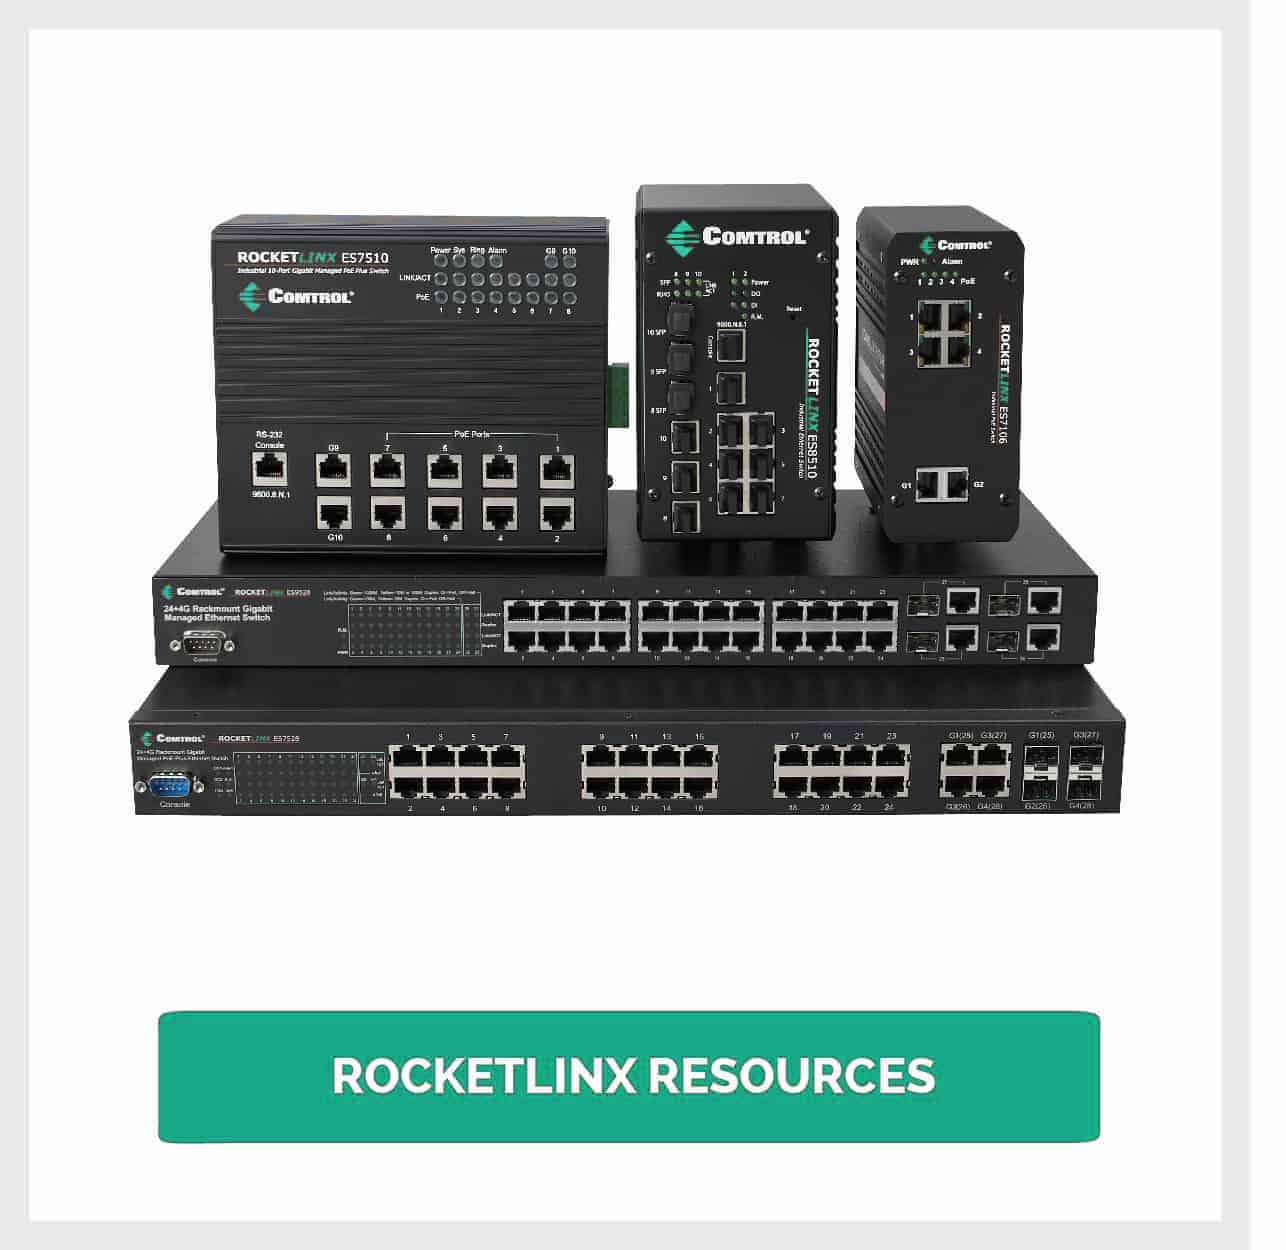 RocketLinx Resources